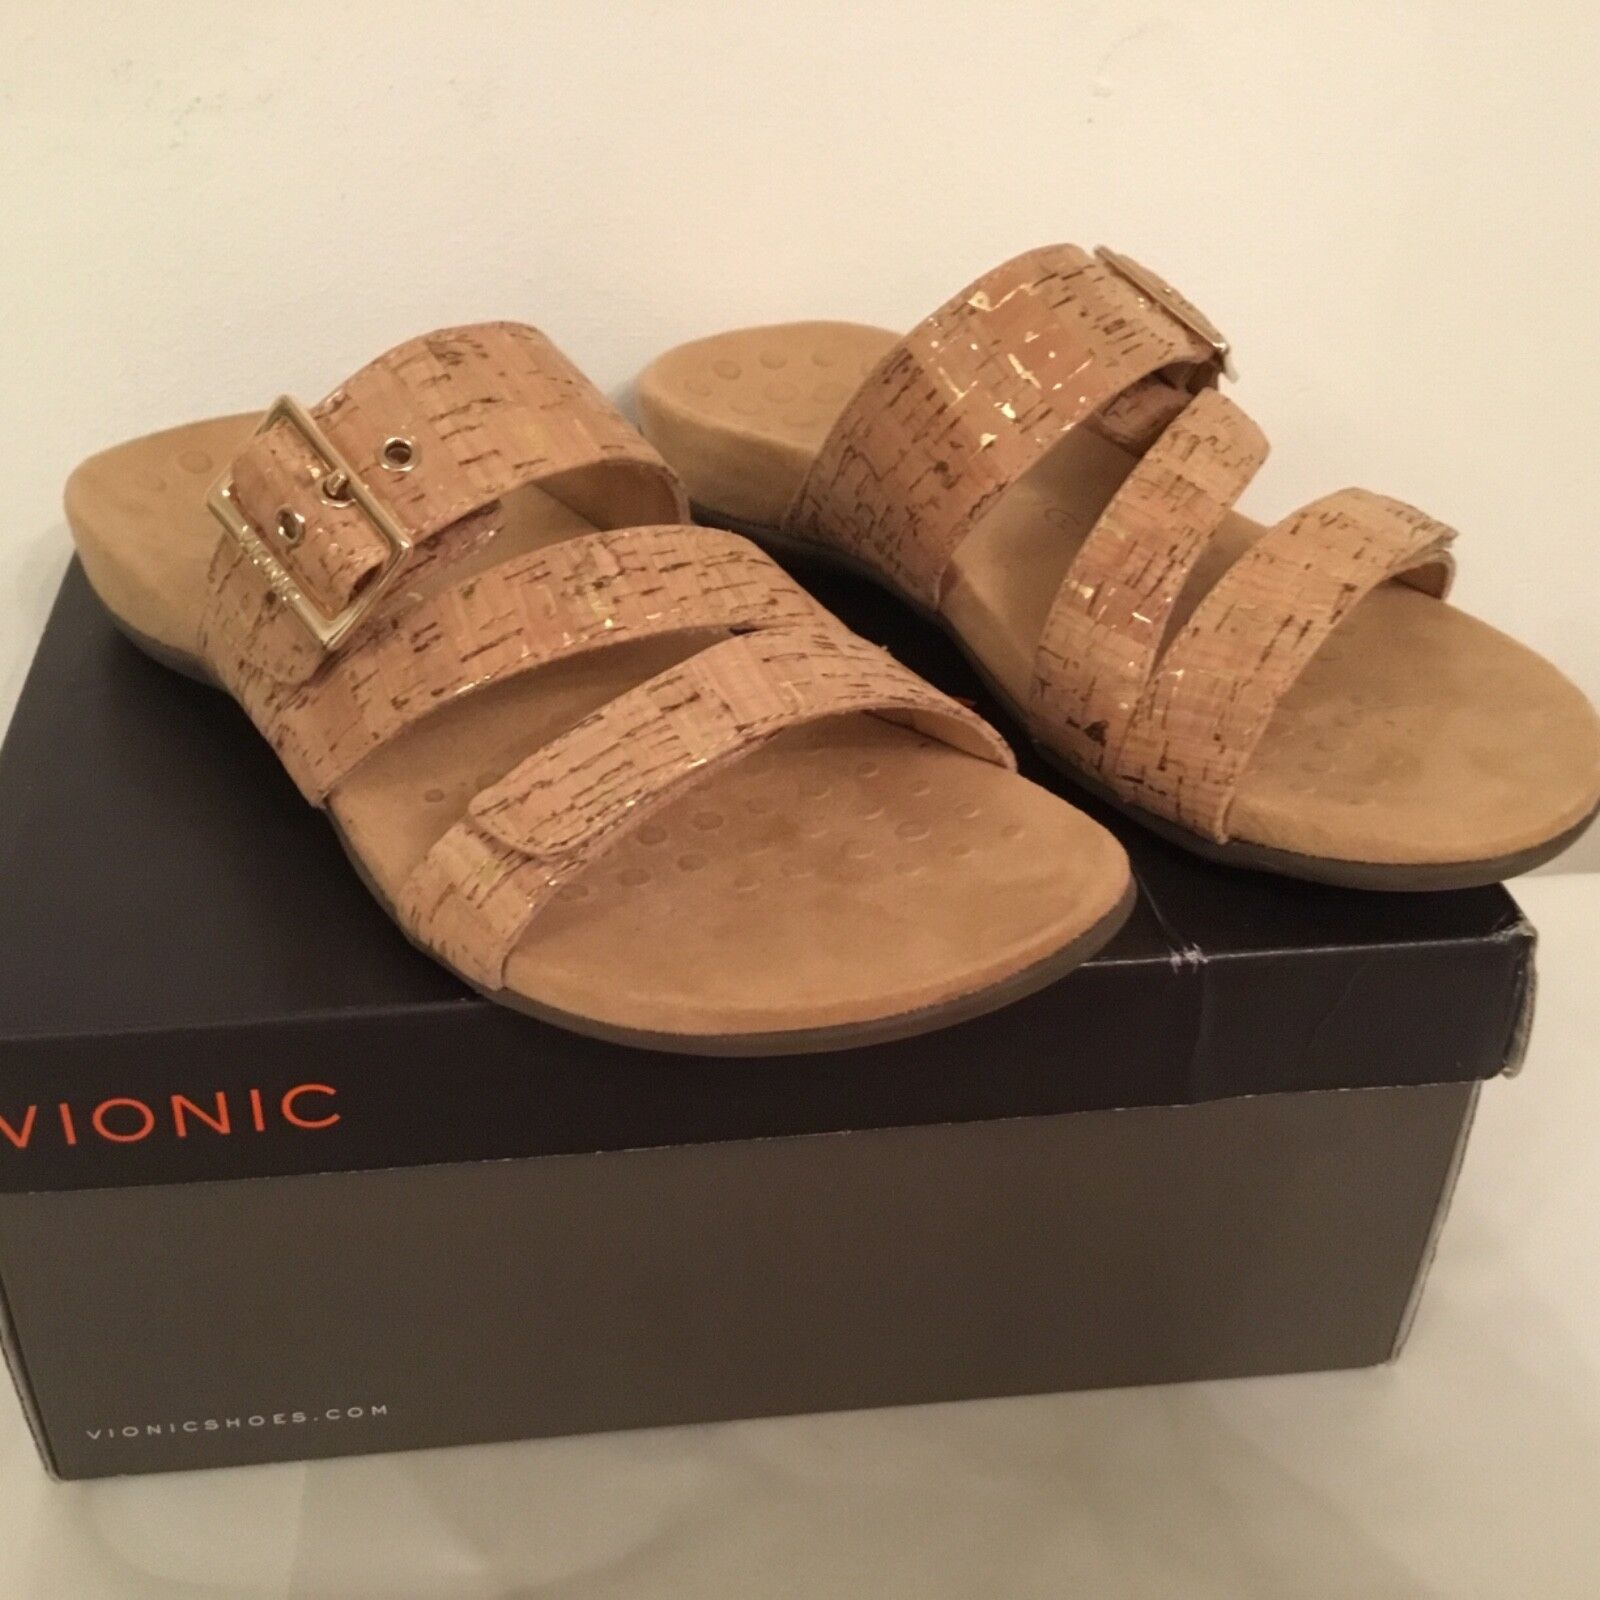 Vionic Orthotic Skylar Buckle Trim Adjustable Sandale w/ FMT Technology